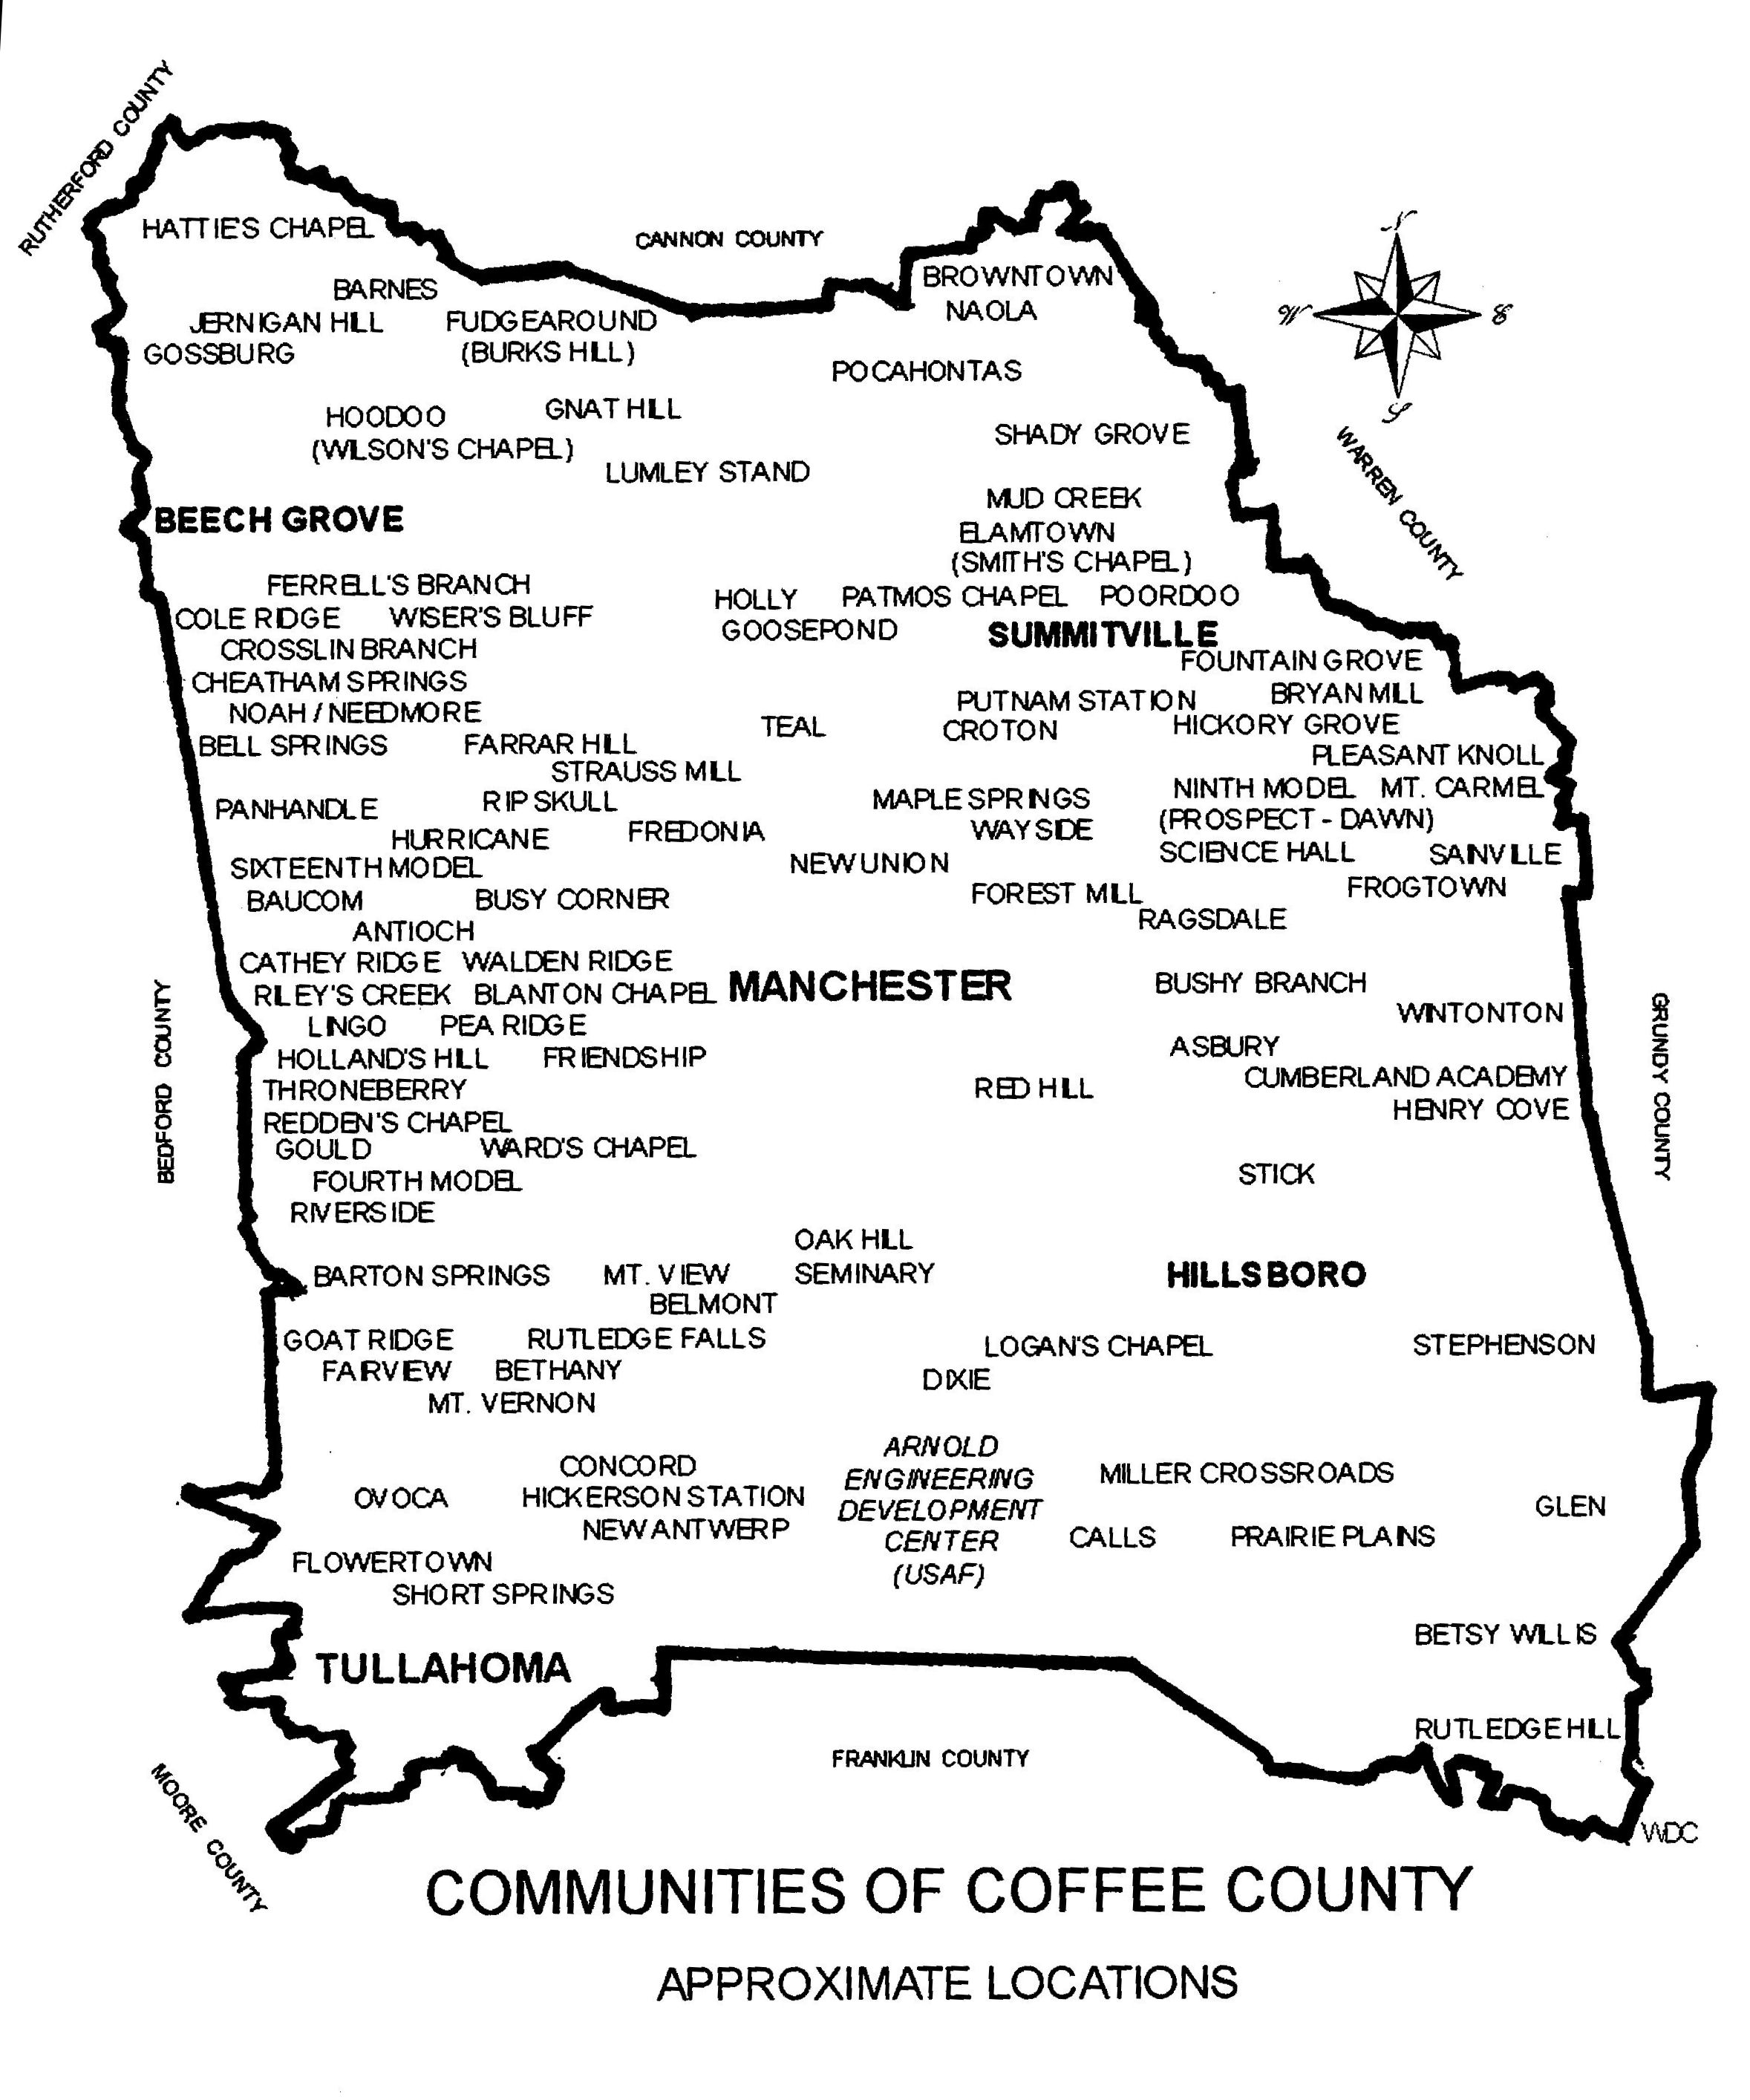 Tennessee coffee county hillsboro - Coffee County Tennessee Communities Showing Stick